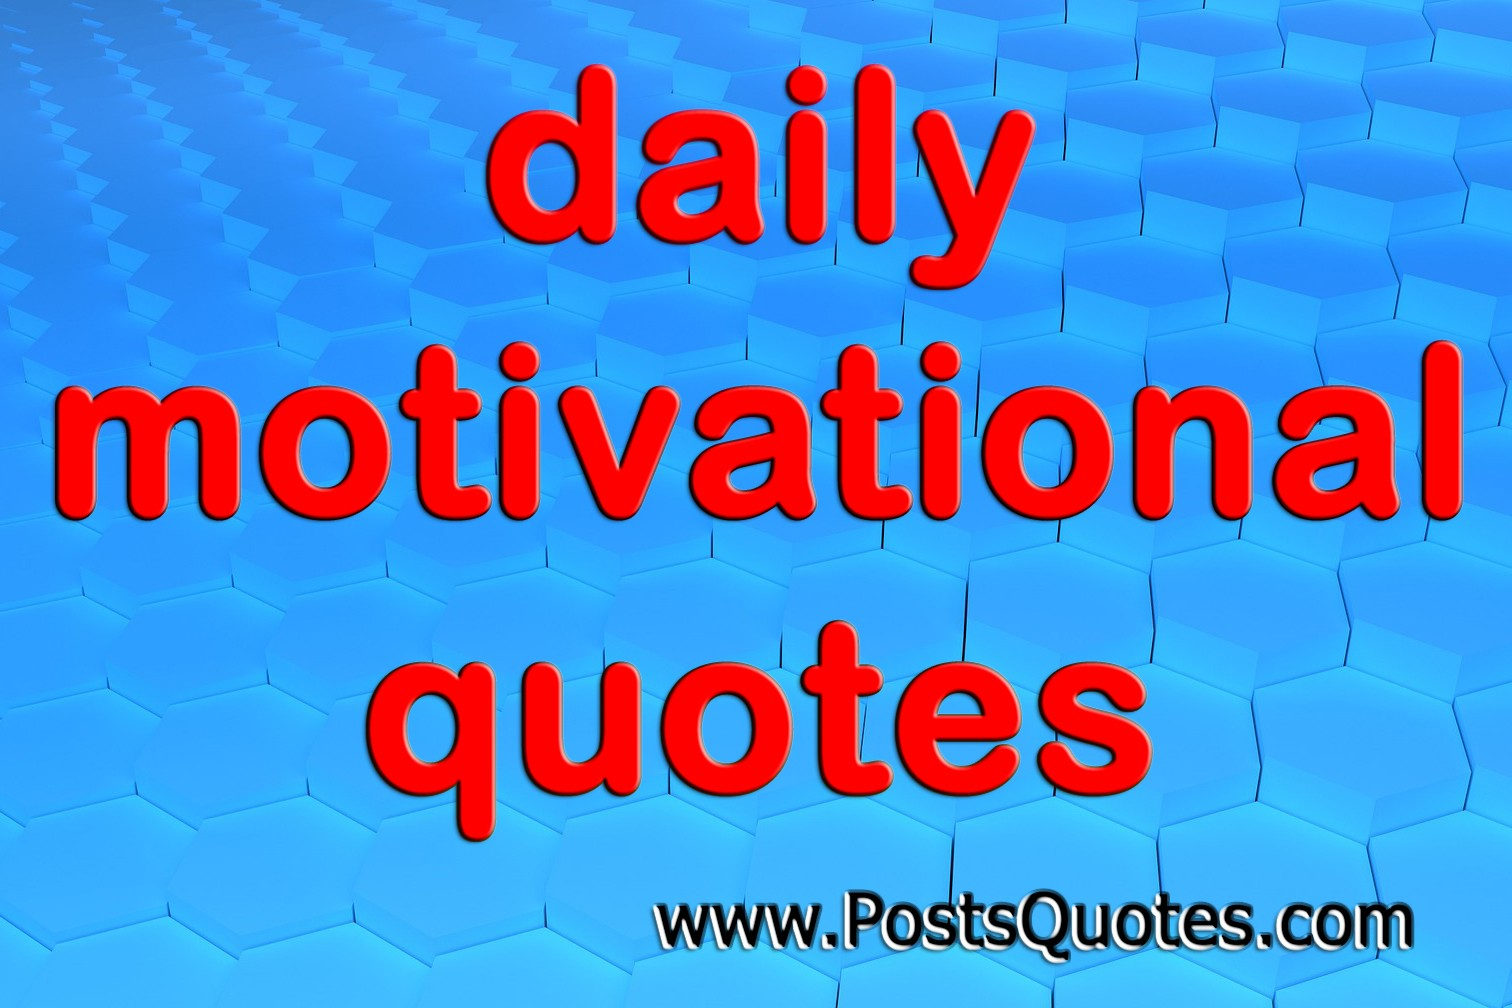 Daily Motivational Quotes